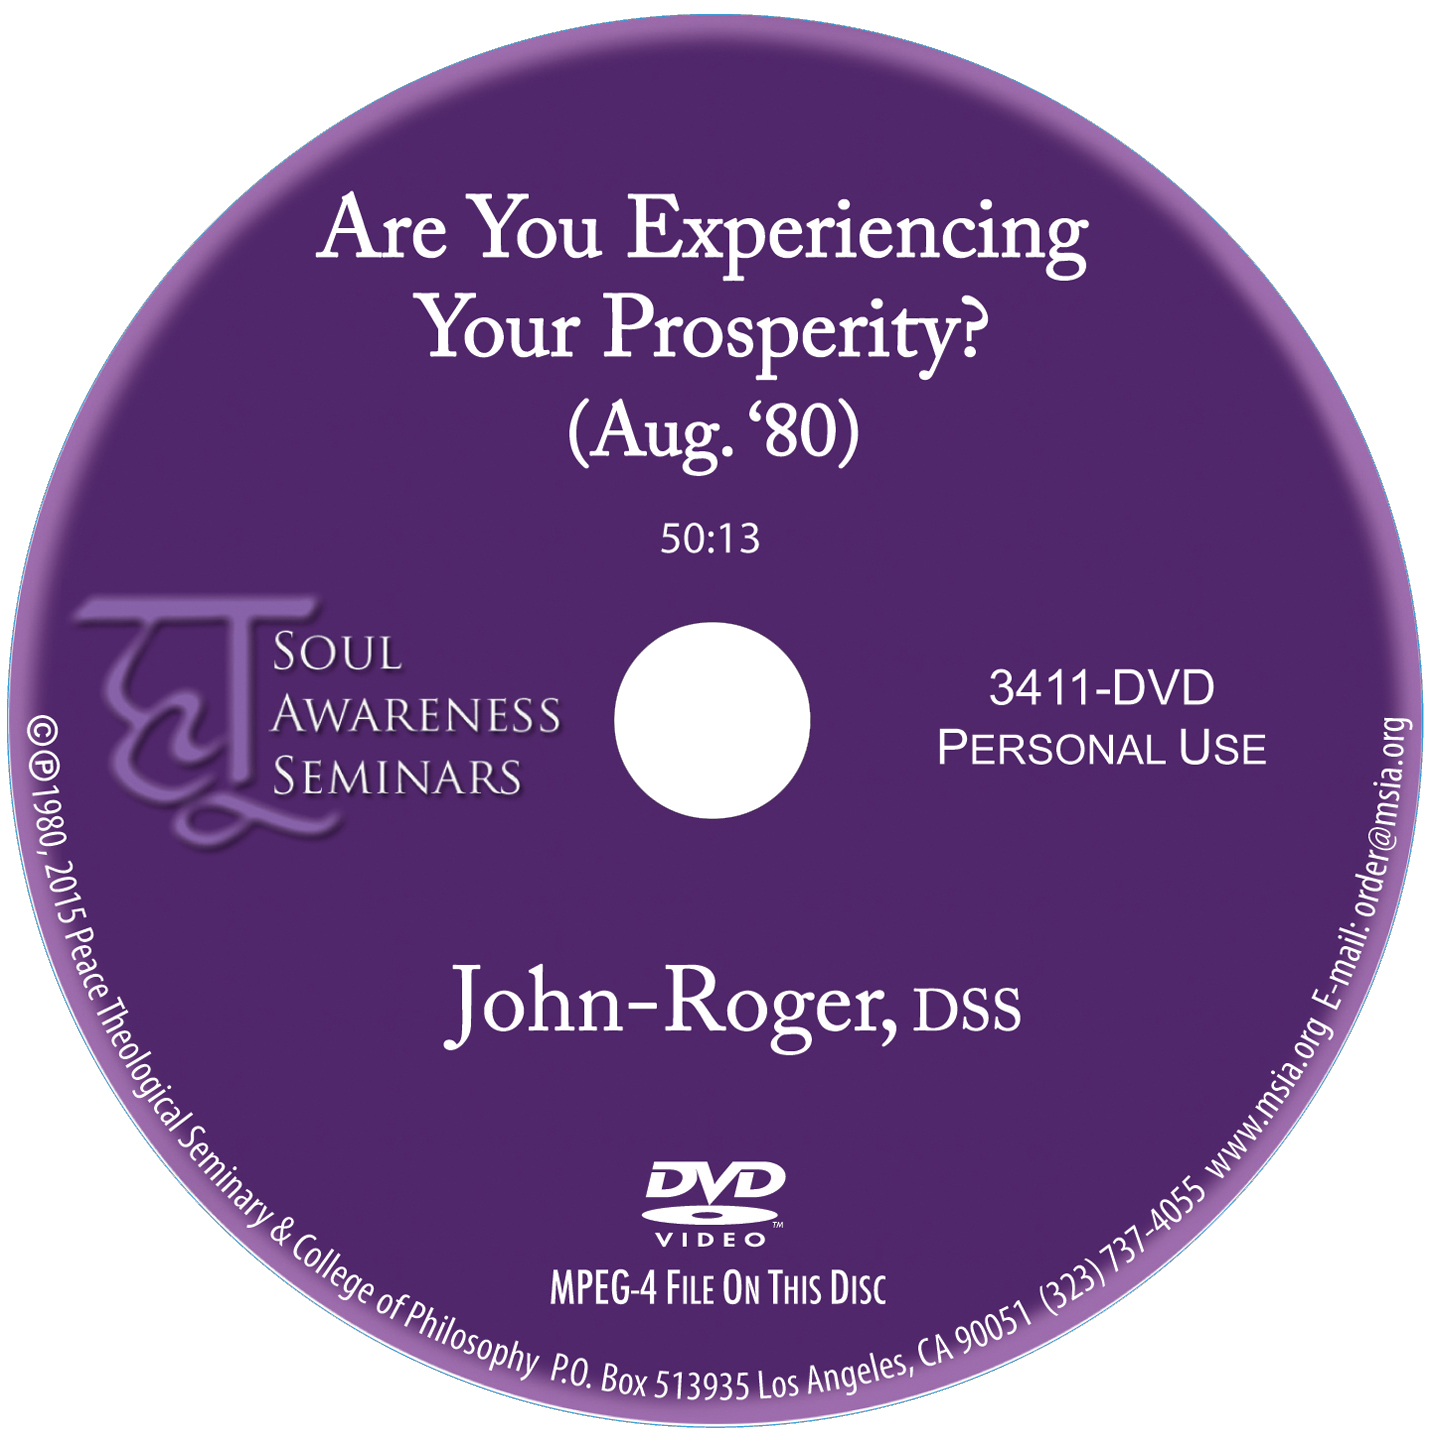 Are You Experiencing Your Prosperity? DVD